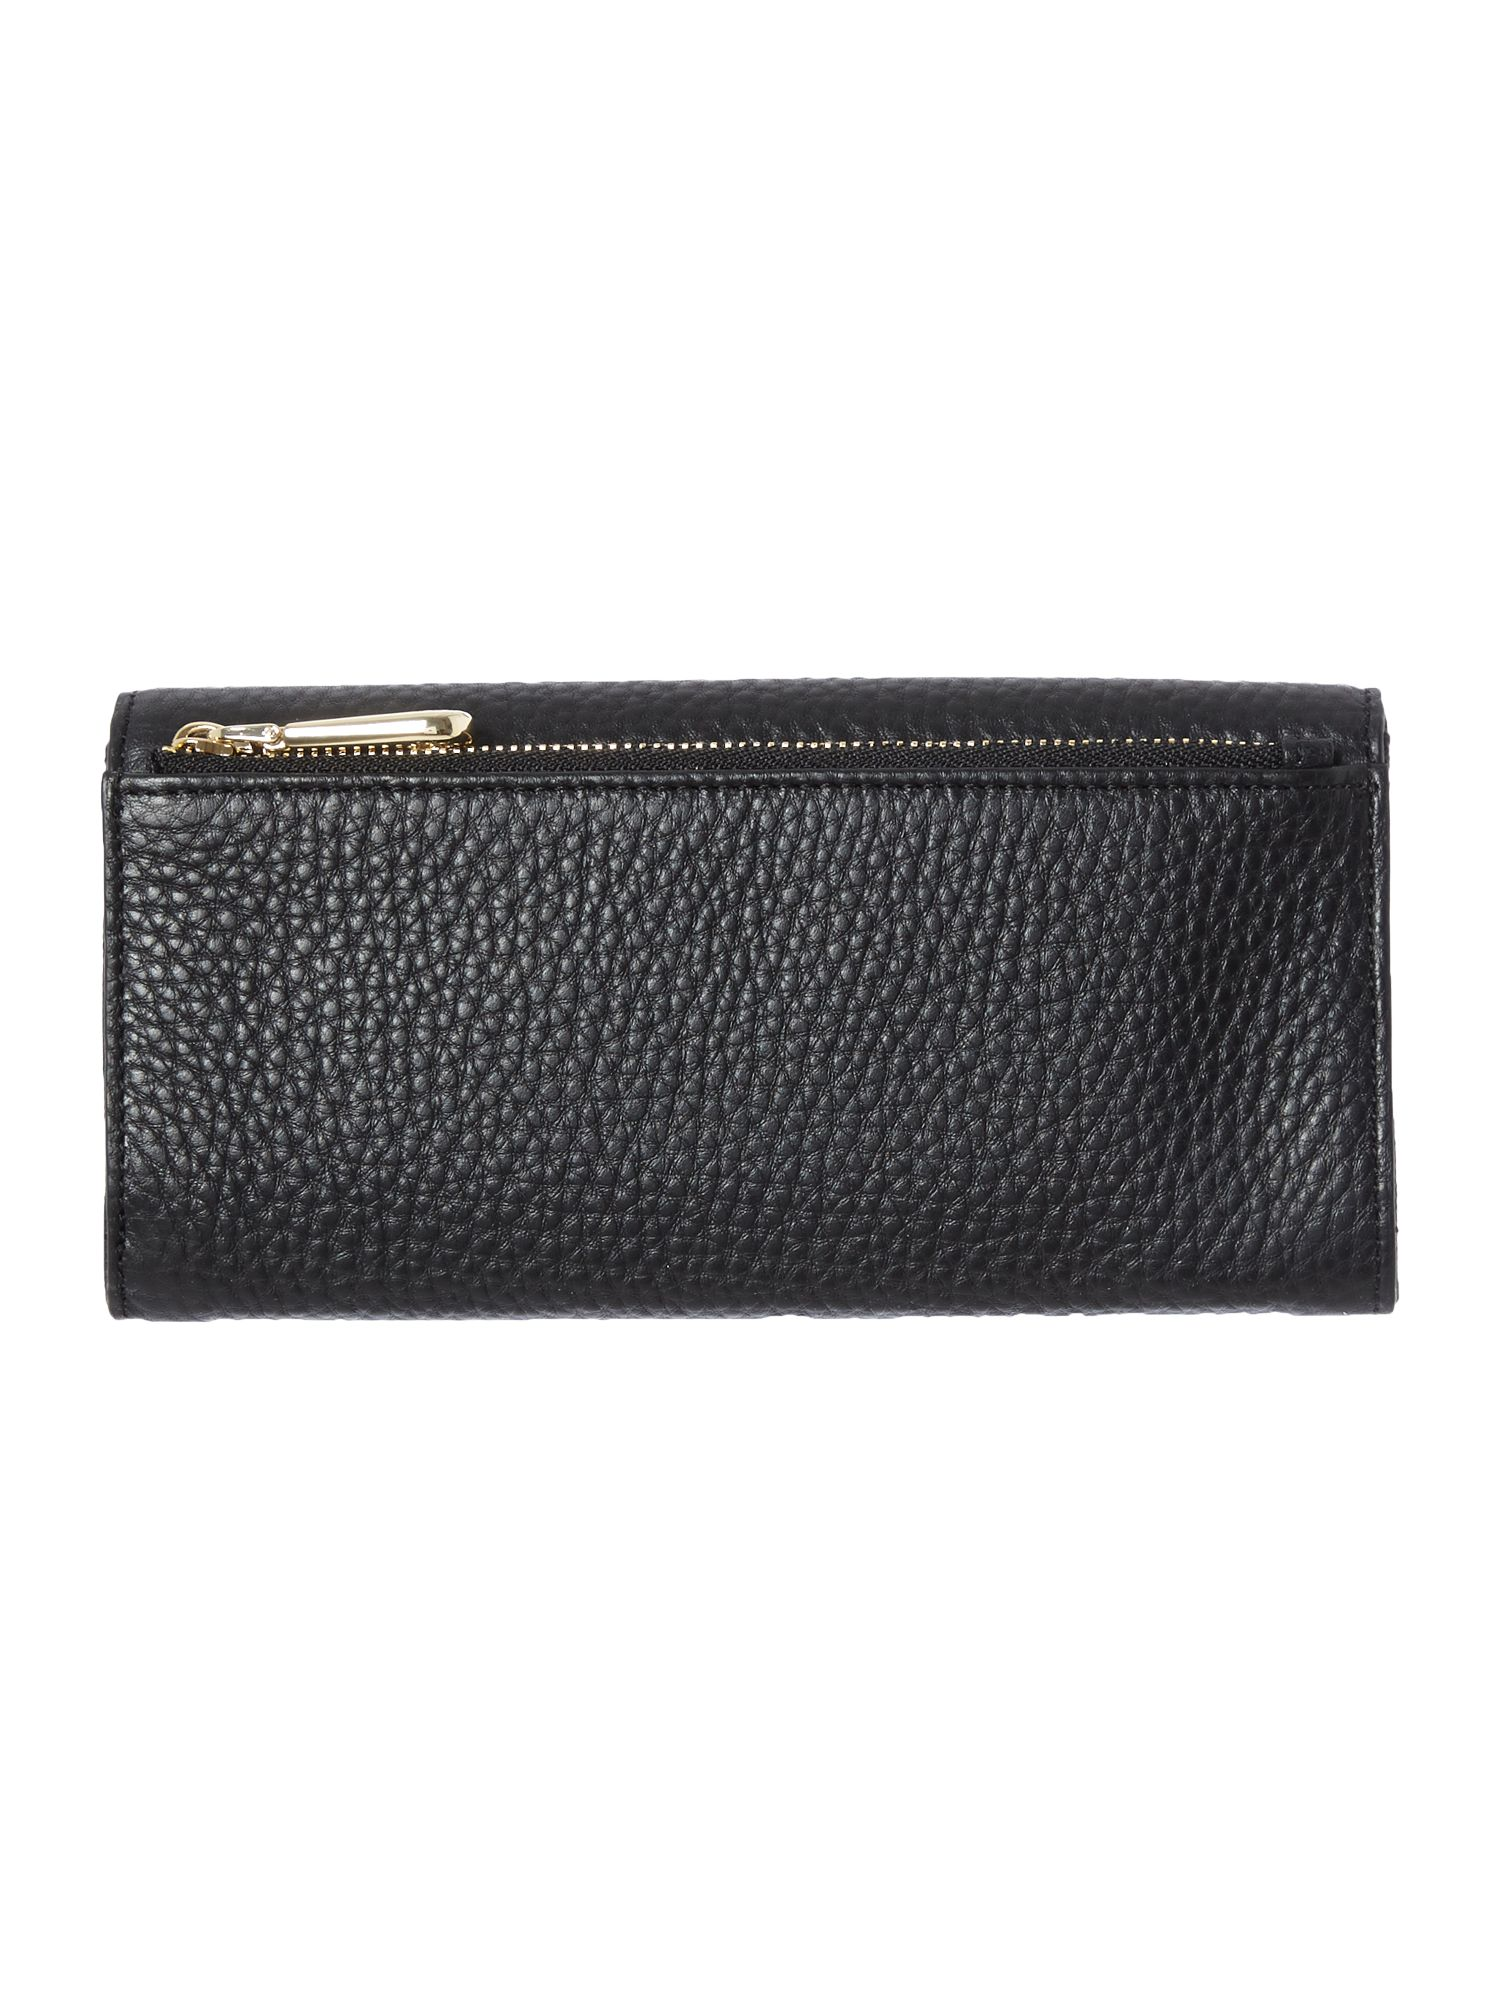 Tribeca black large flap over purse